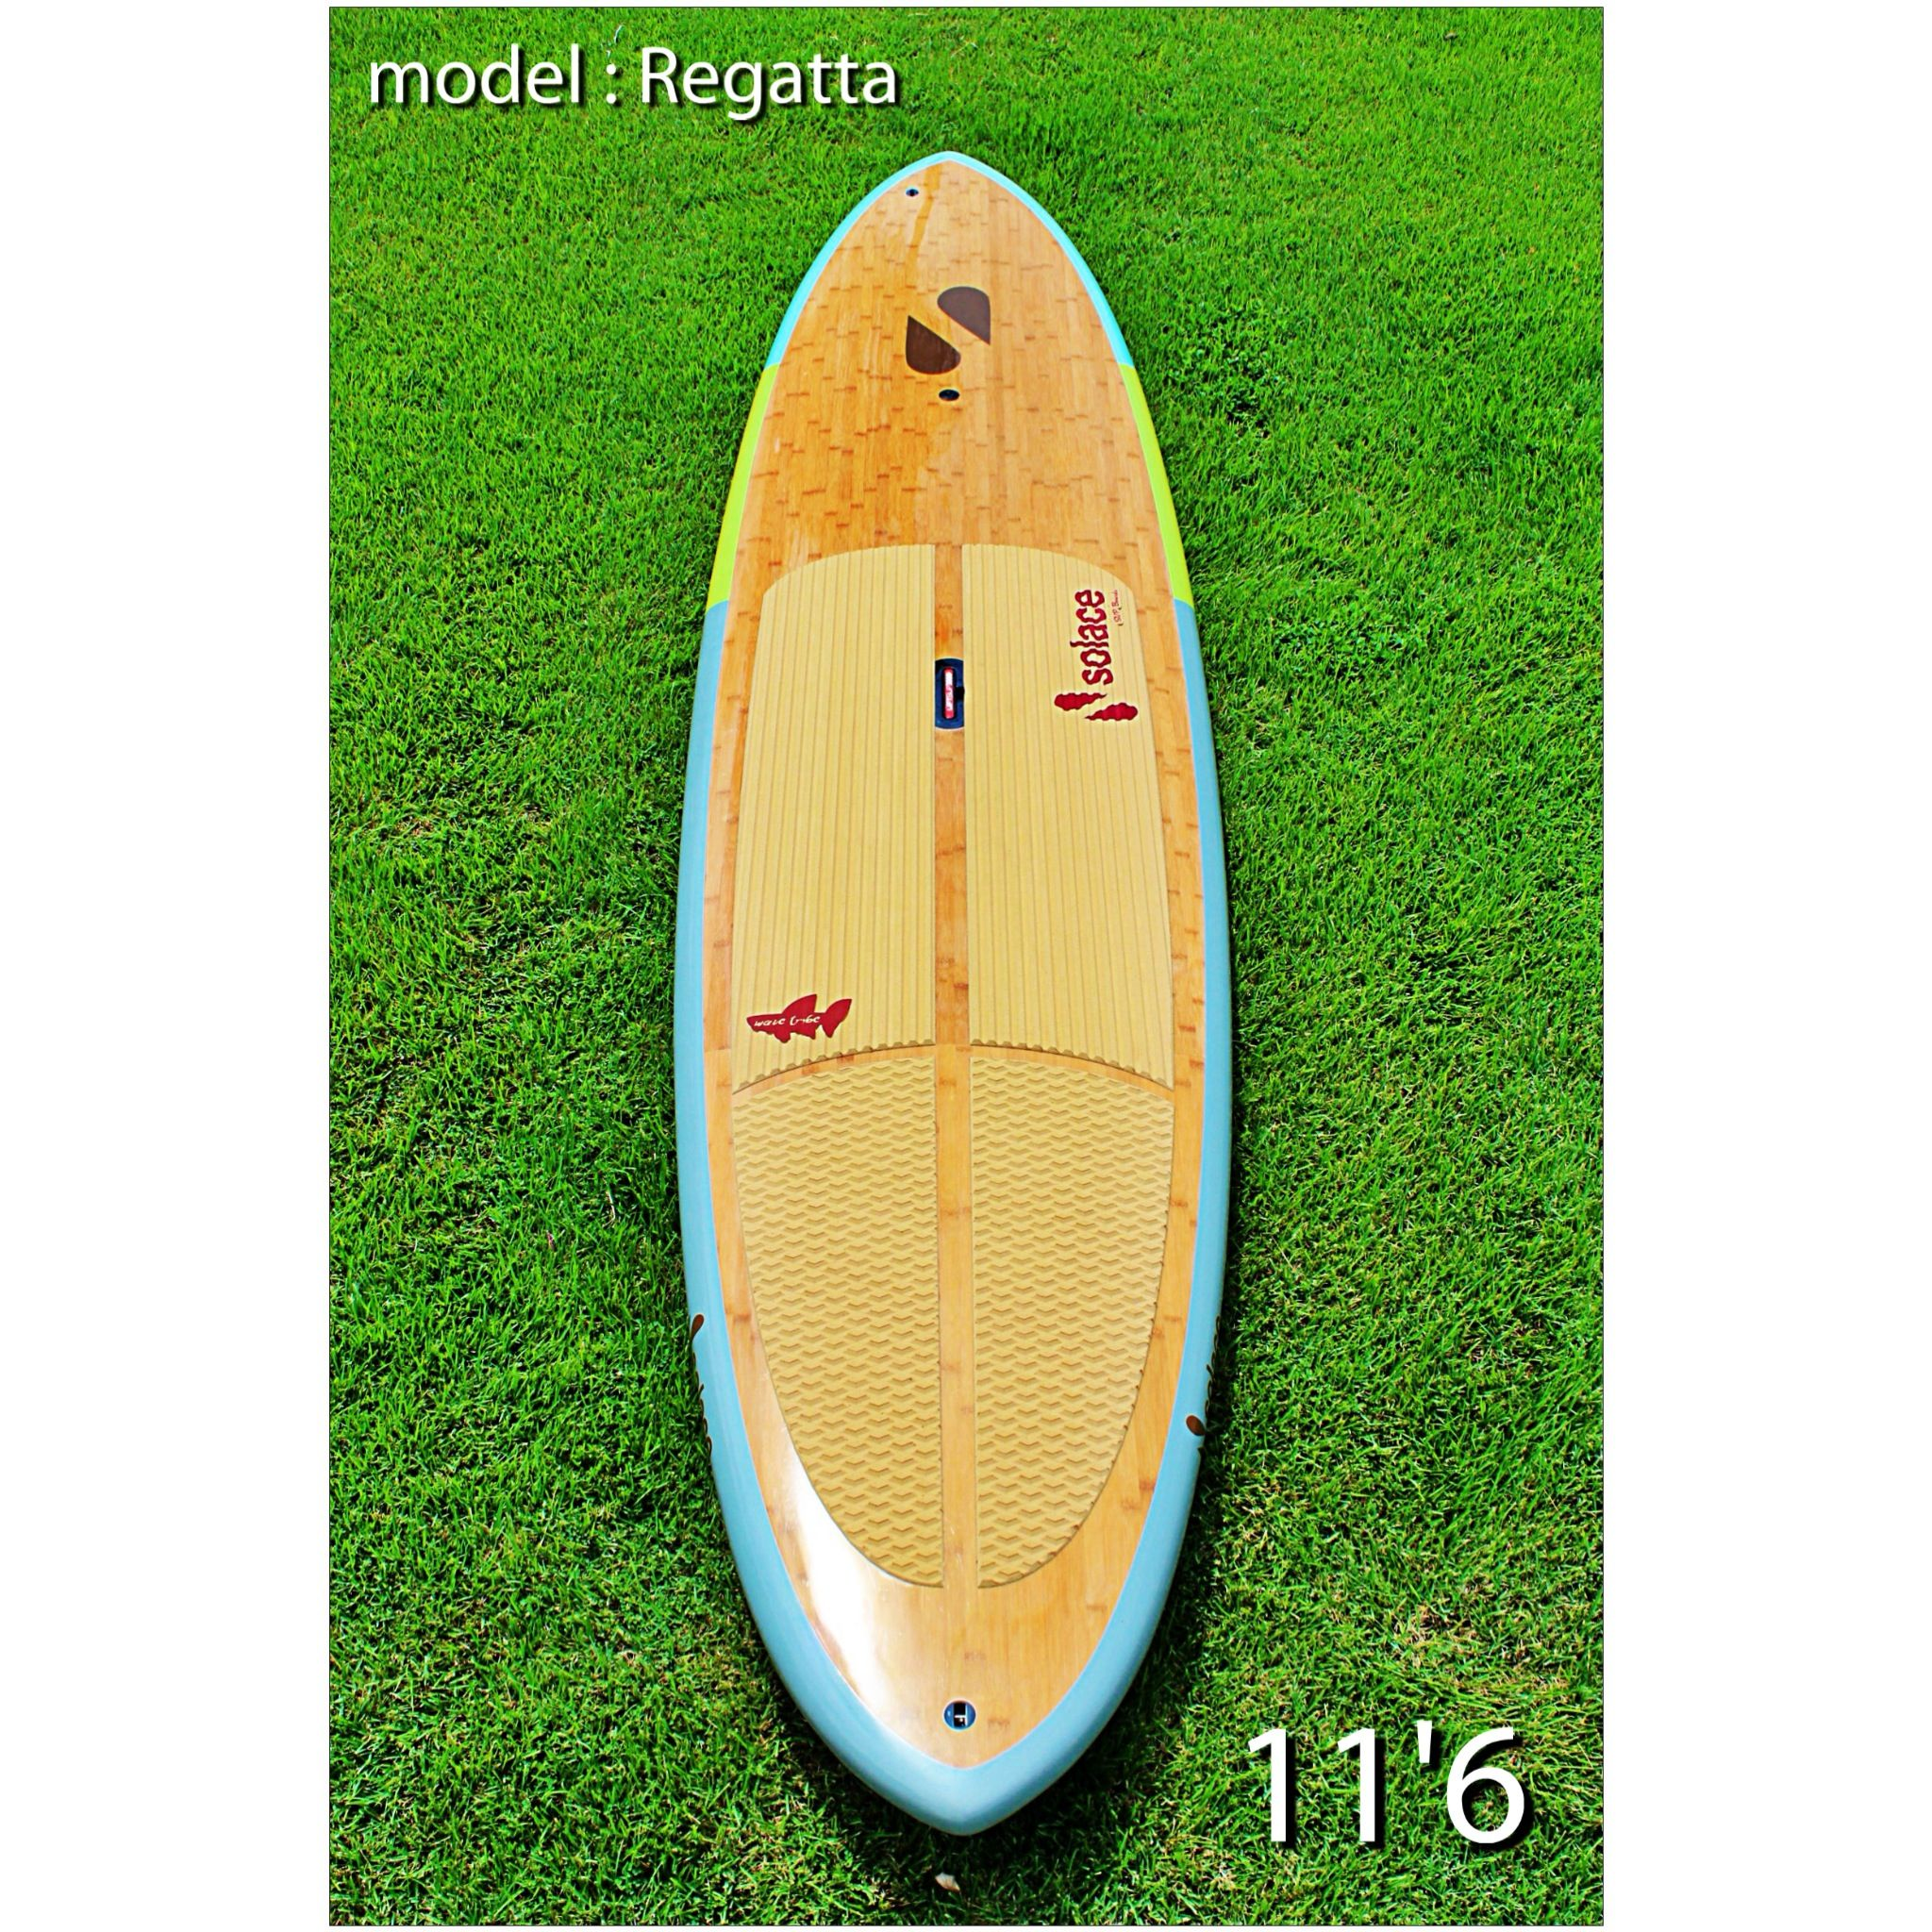 a49c2ecf8 Our Regatta model with a natural customized cork deck pad. Standup Paddle  Board